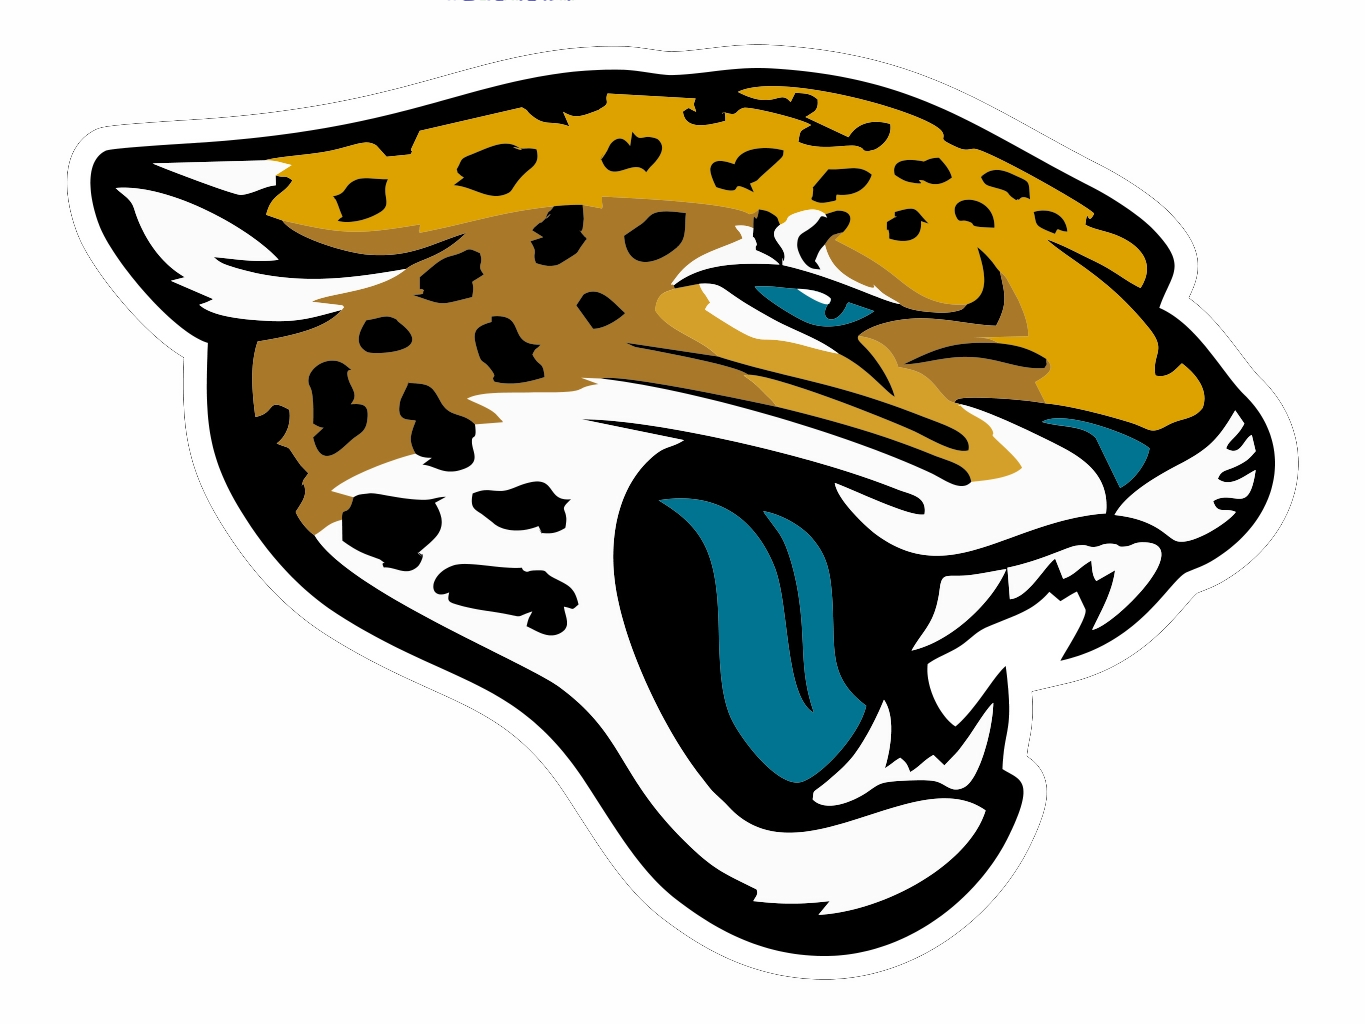 jacksonville jaguars cut free images at clkercom